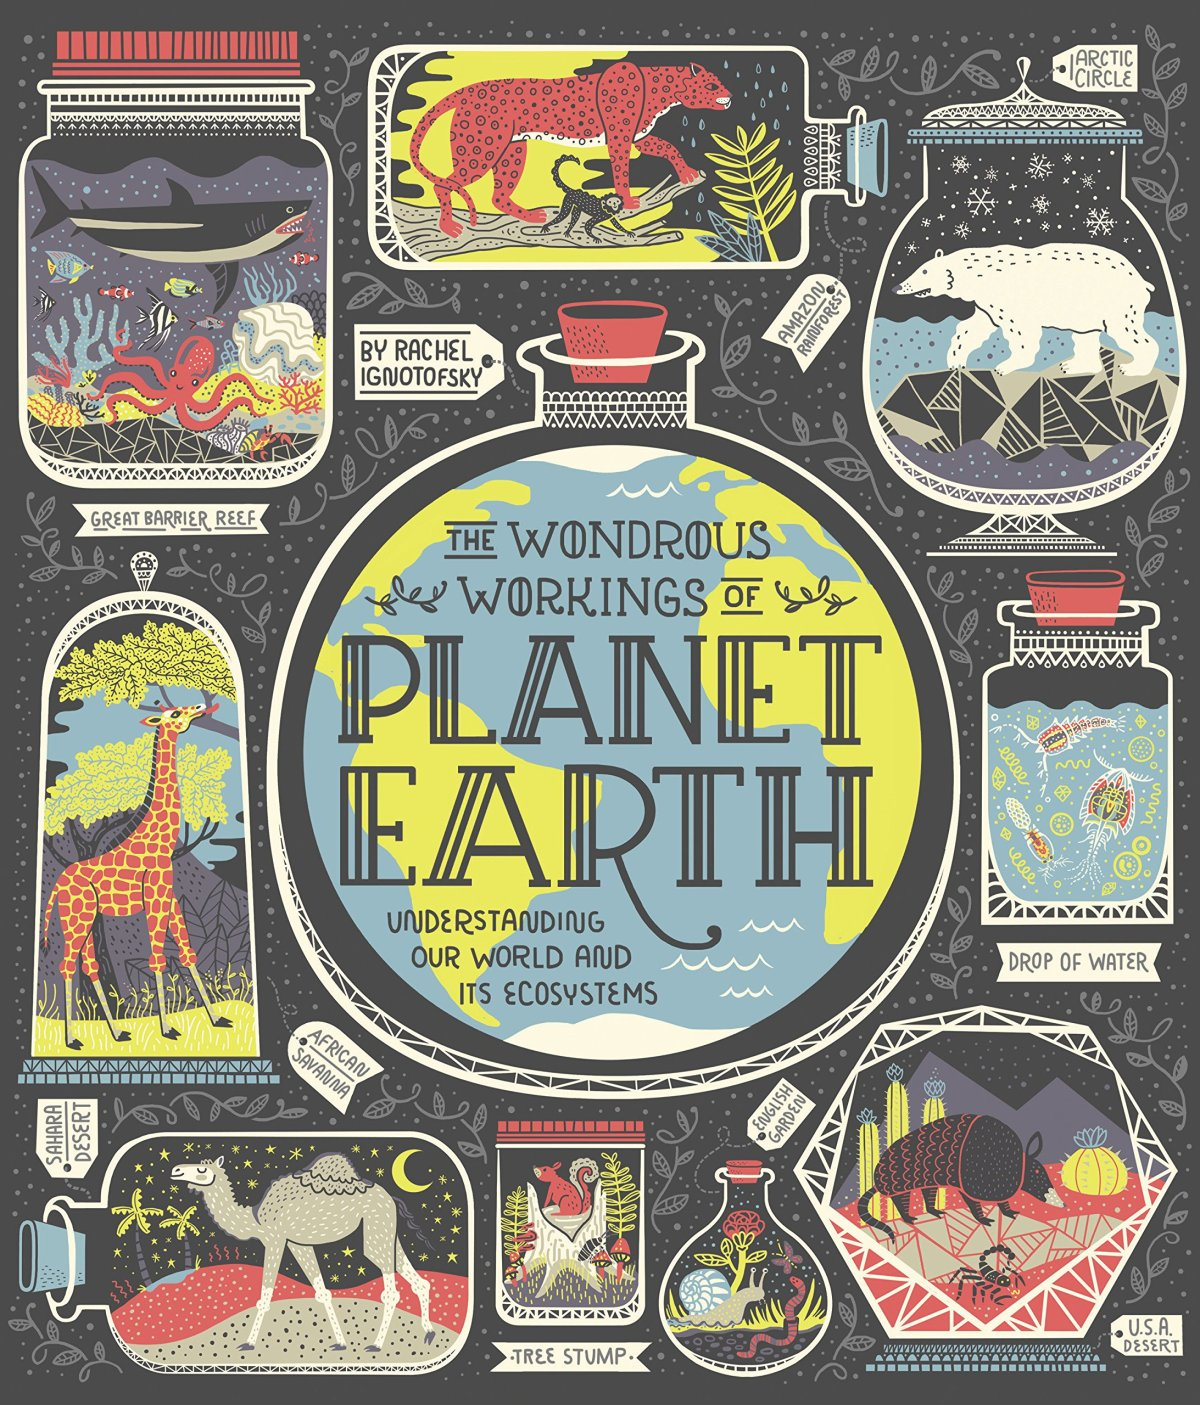 the wondrous workings of planet earth cover